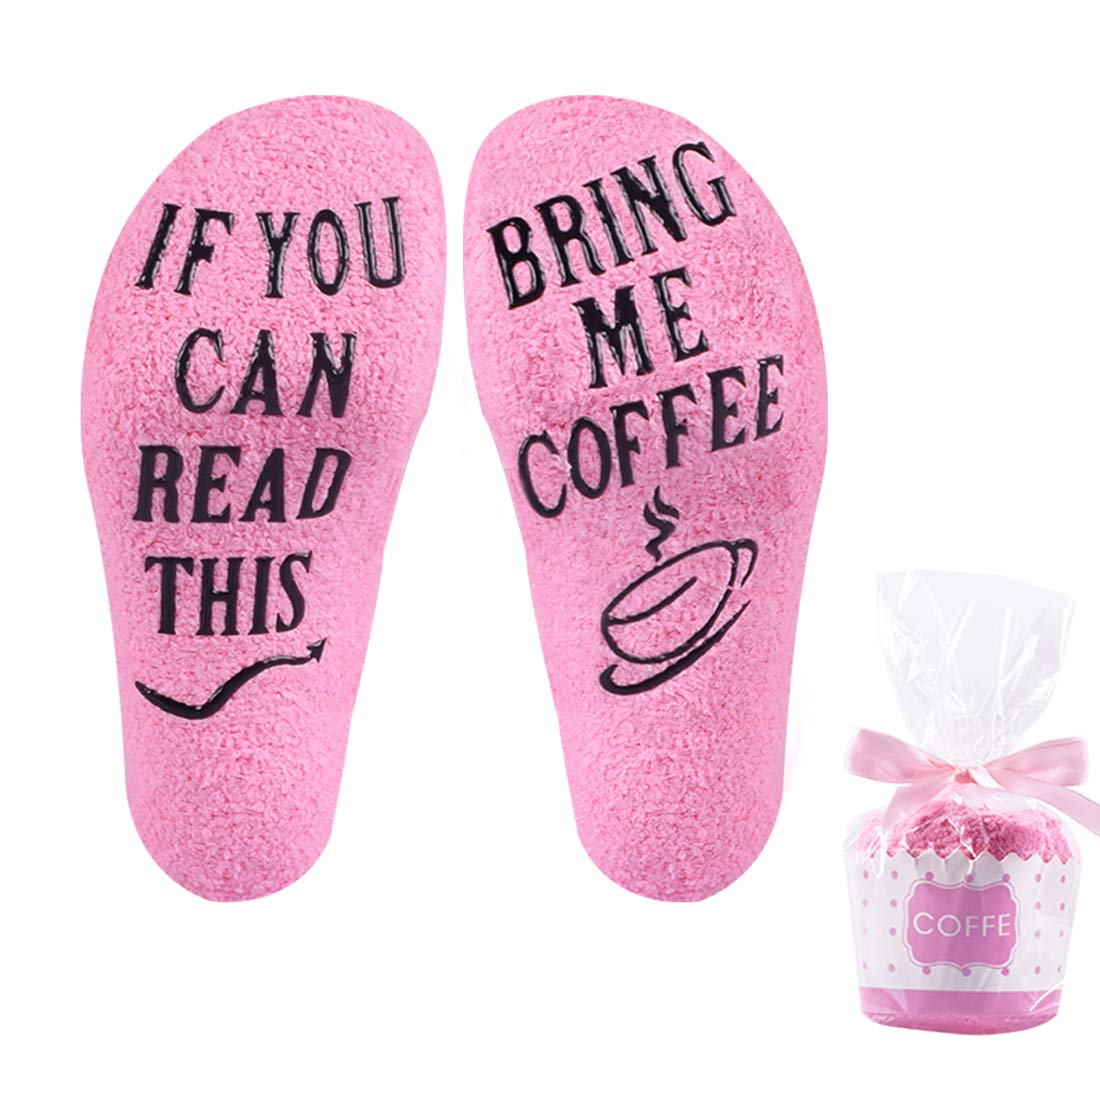 Coffee sock with Cupcake Gift Packing 'If You Can Read This Bring Me Coffee' Purse - Great Gift for Coffee Addict Mothers Day Birthday Gift for Women (Coffee Socks)